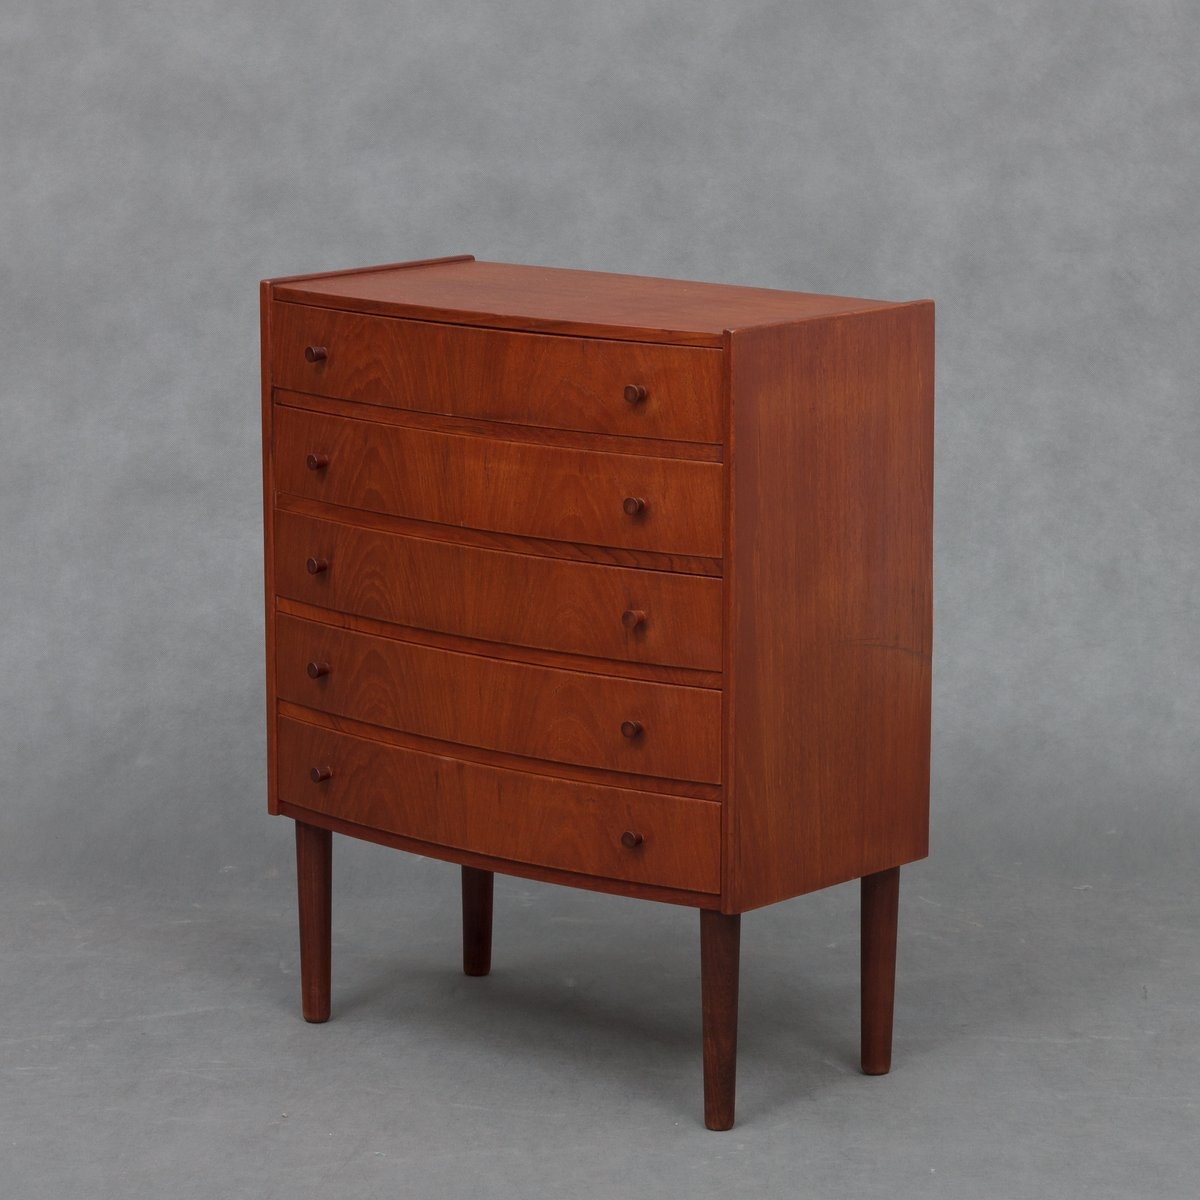 d nische mid century teak kommode 1960er bei pamono kaufen. Black Bedroom Furniture Sets. Home Design Ideas